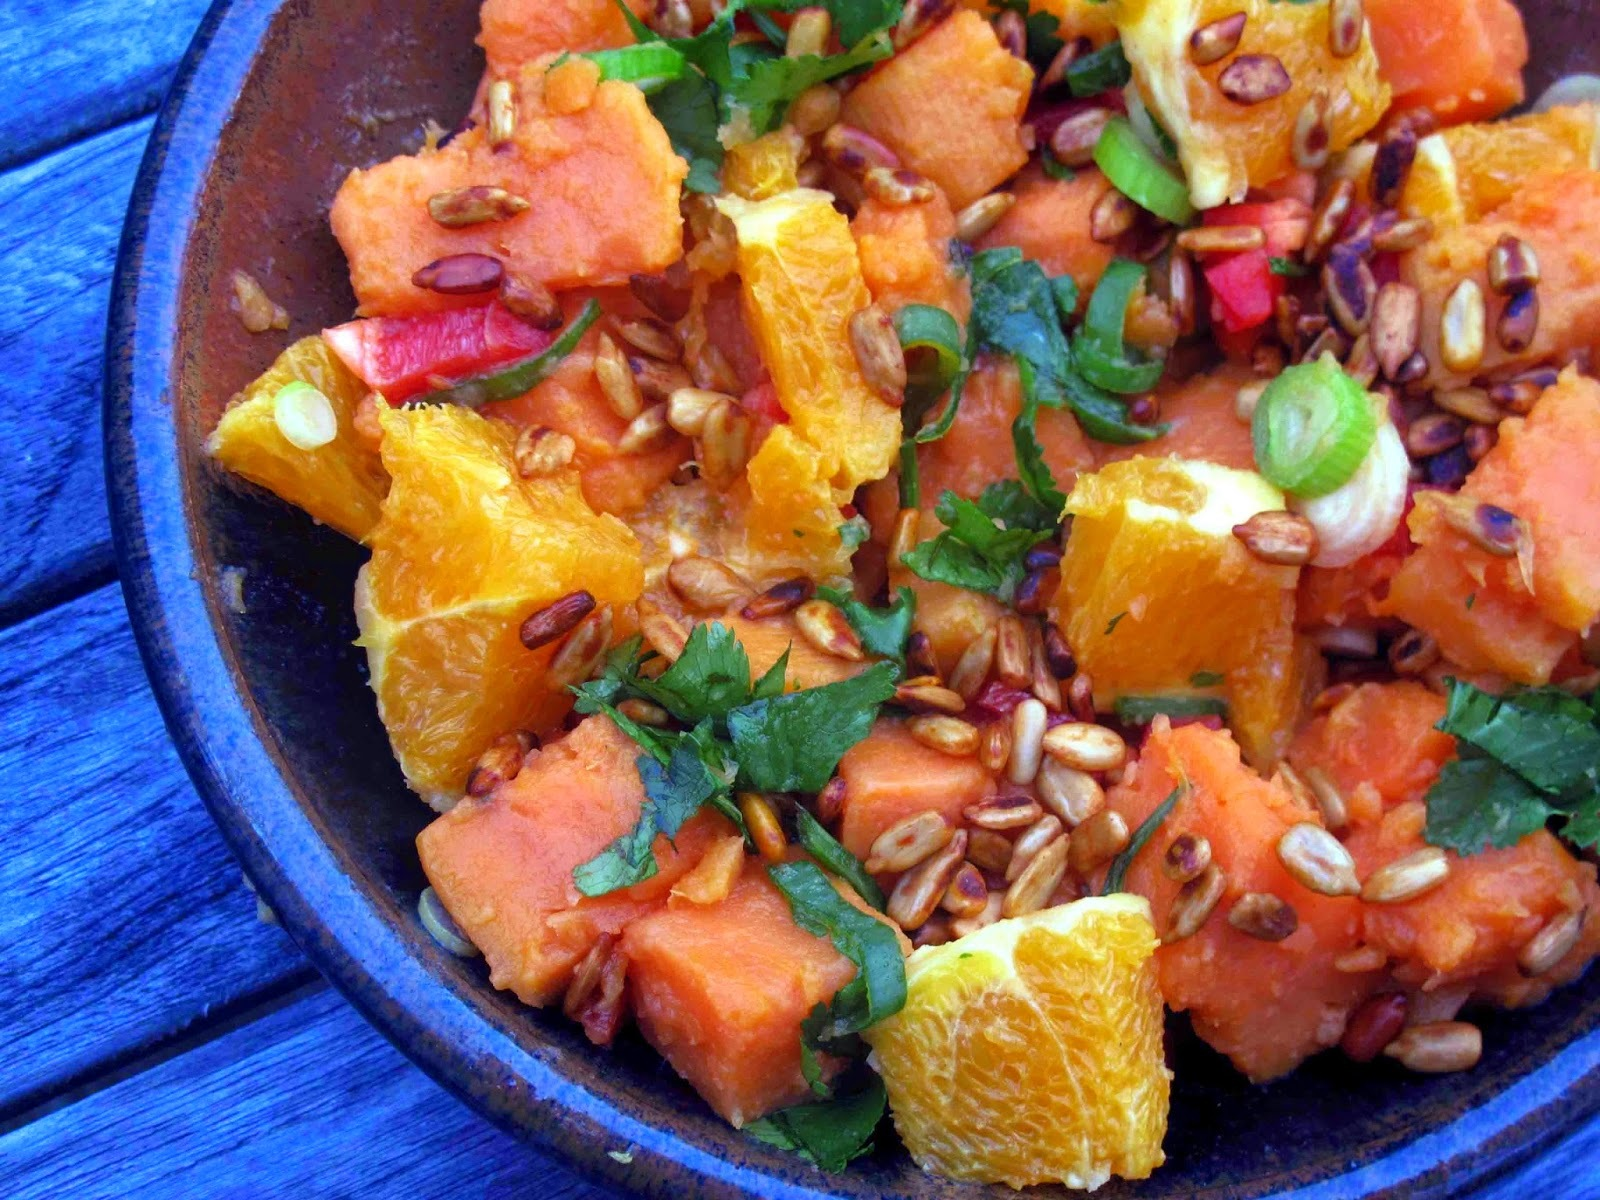 Spicy Kumara Salad